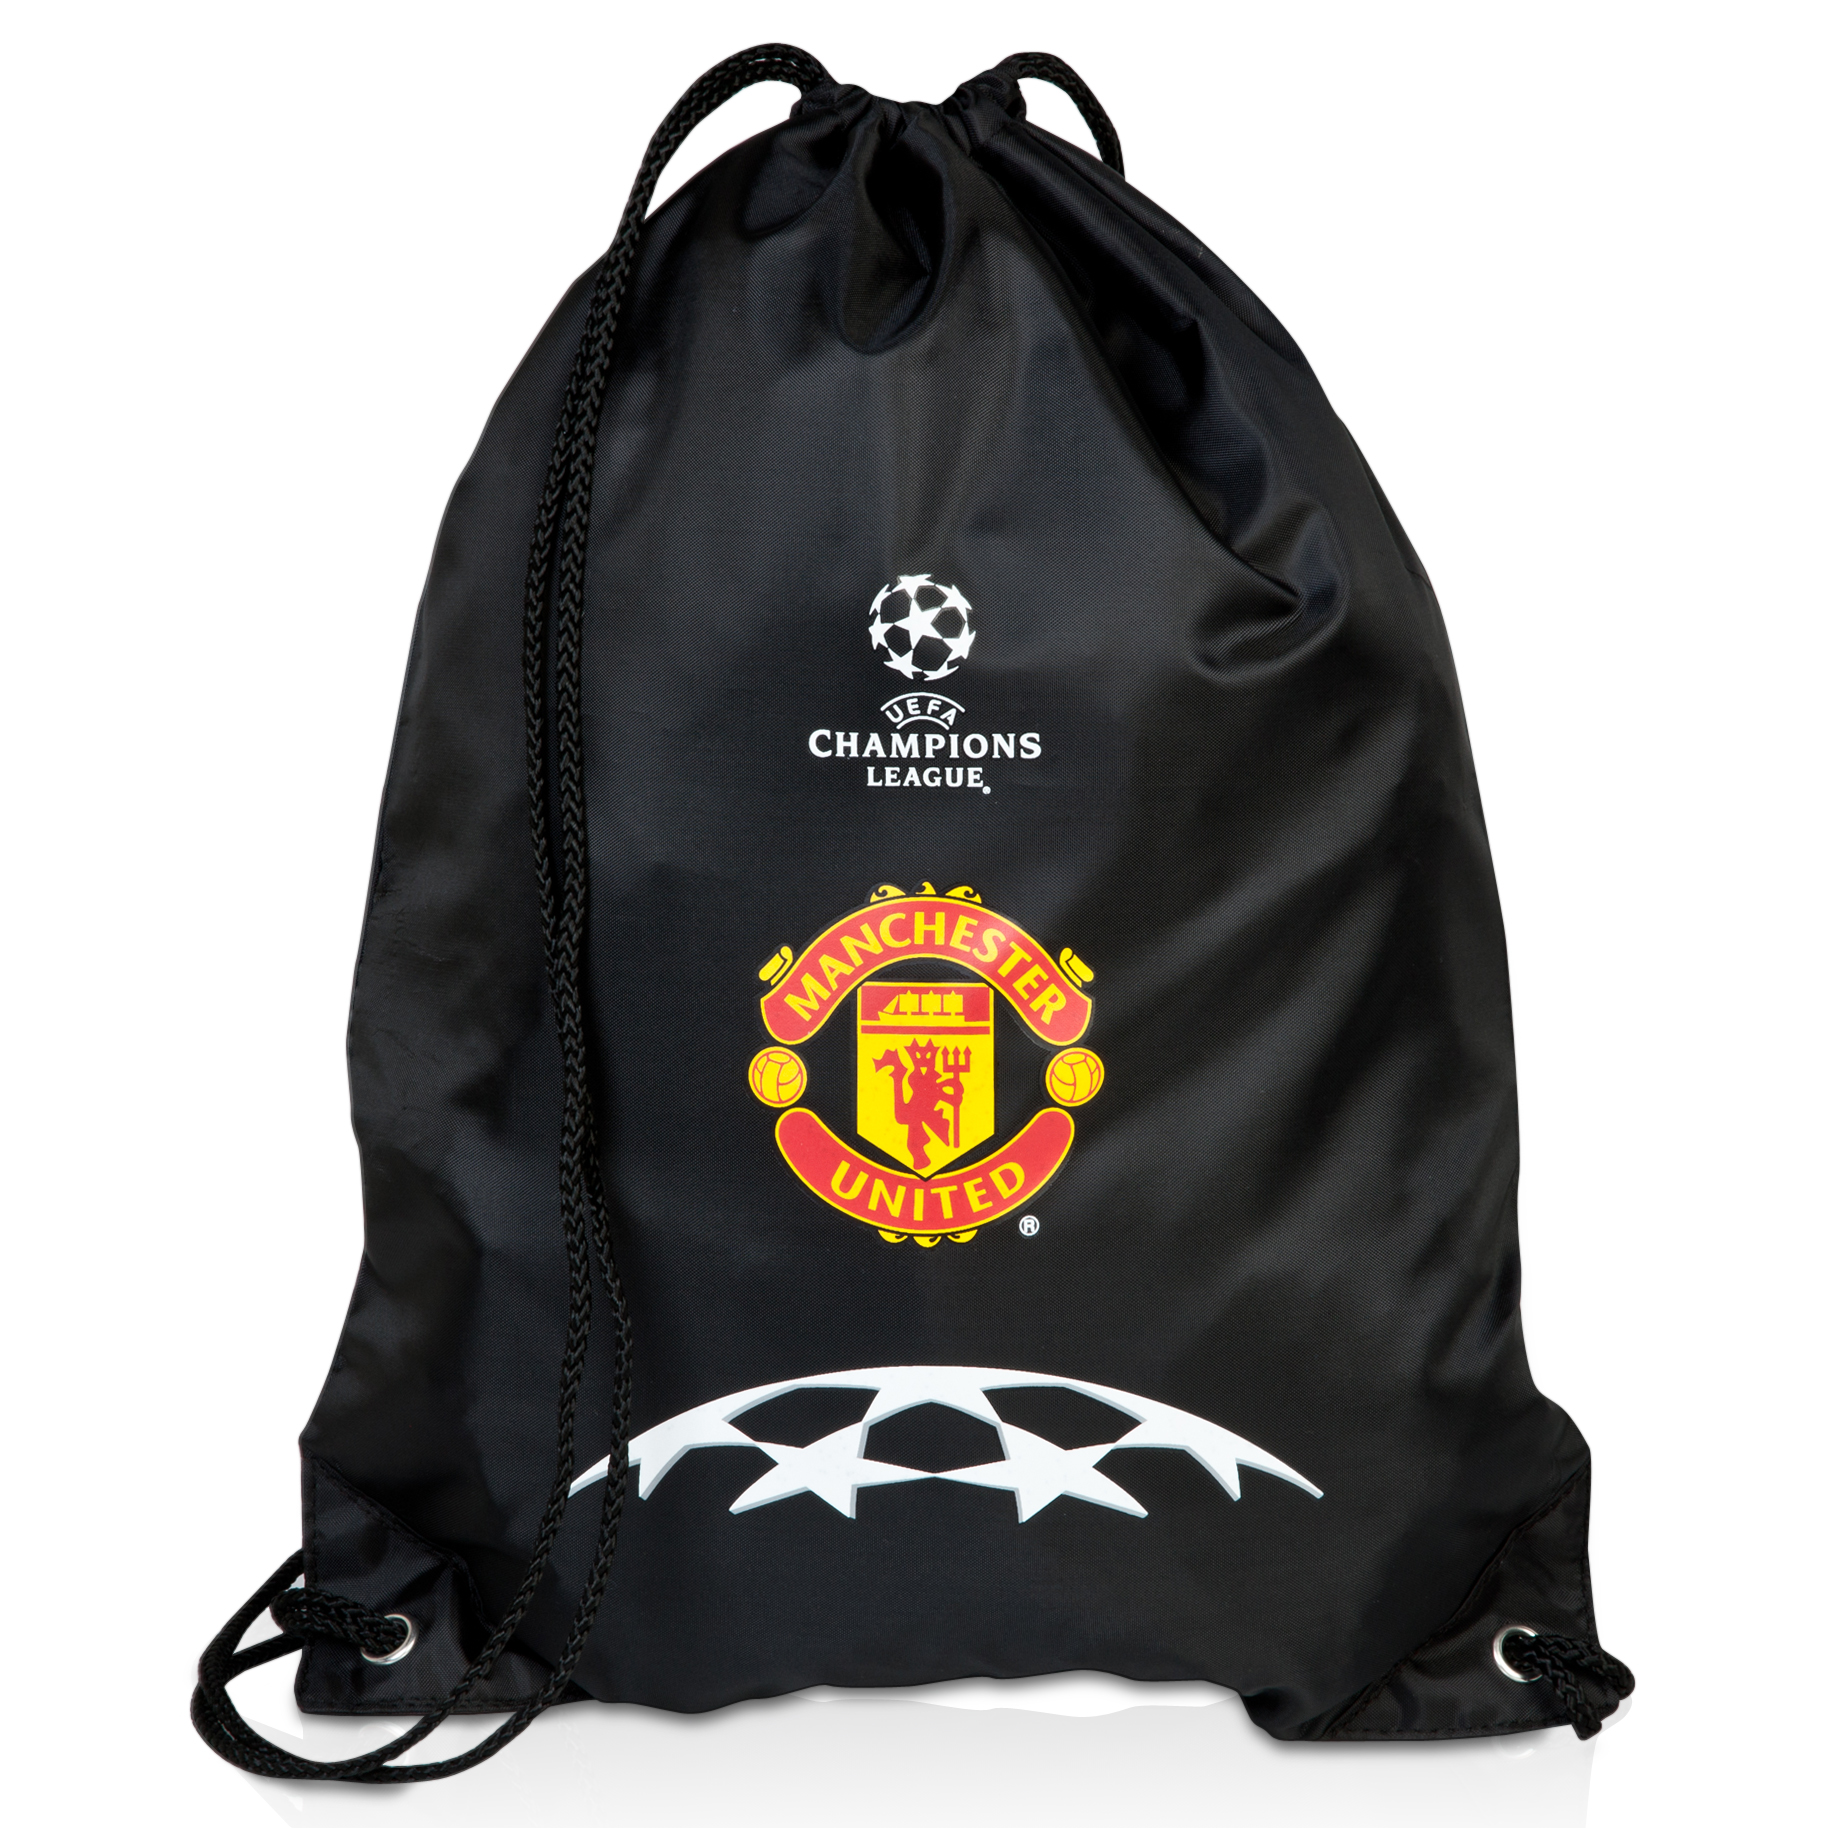 Manchester United UEFA Champions League Gym Sack